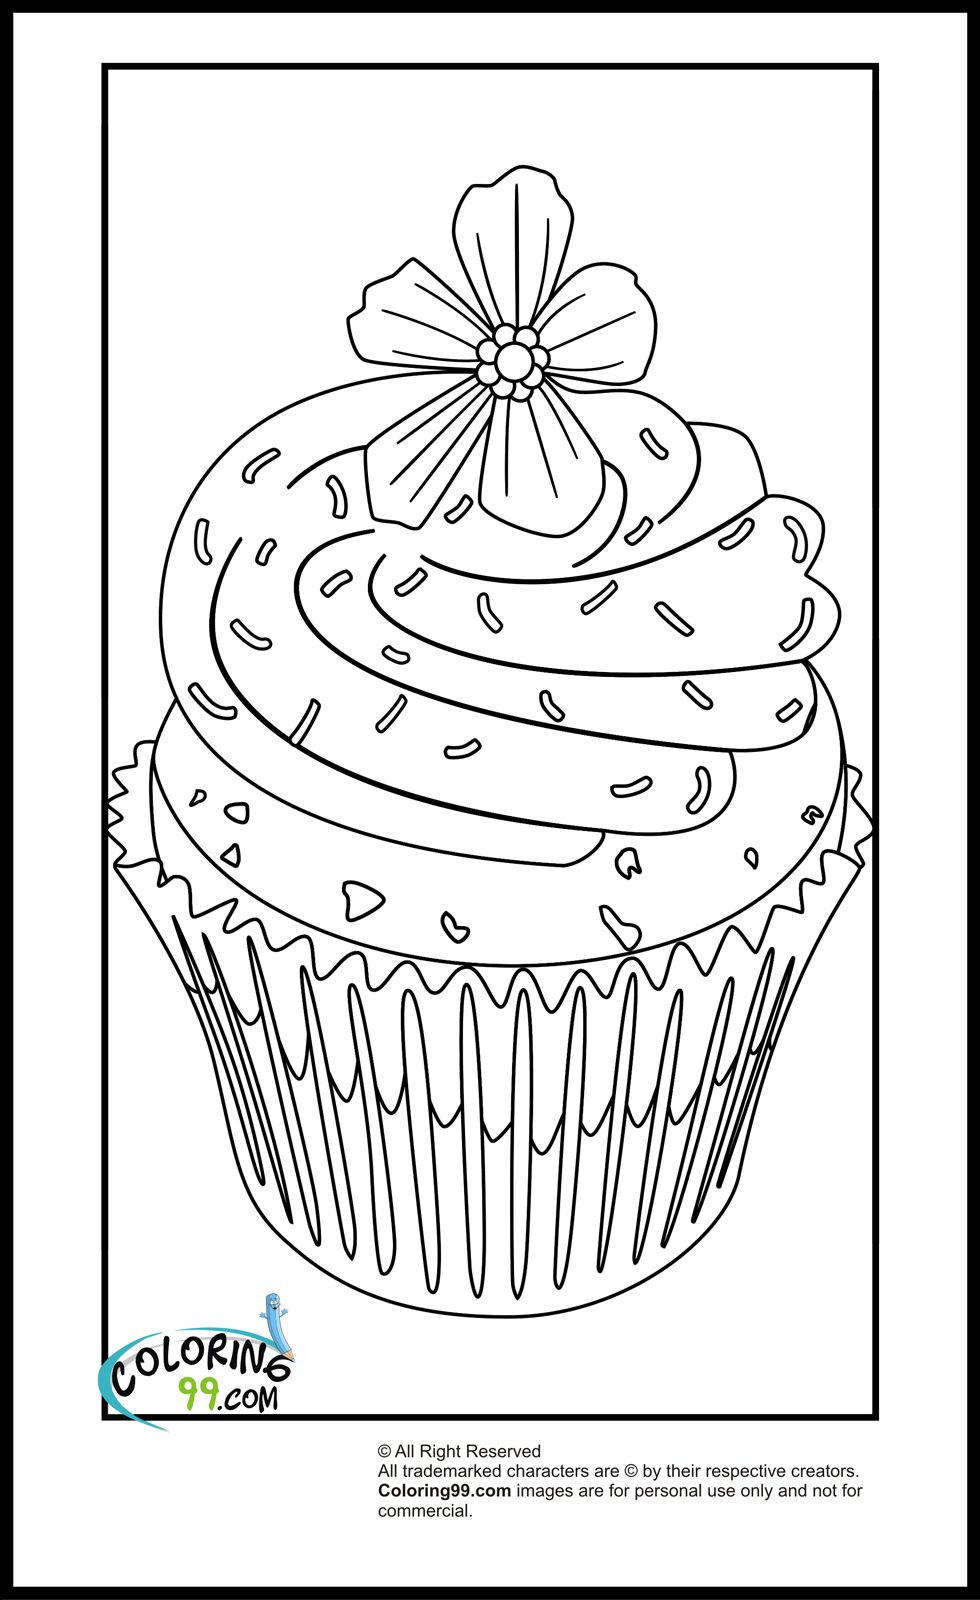 Icolor Cupcakes A Cupcake With Flower Violet On Top And With